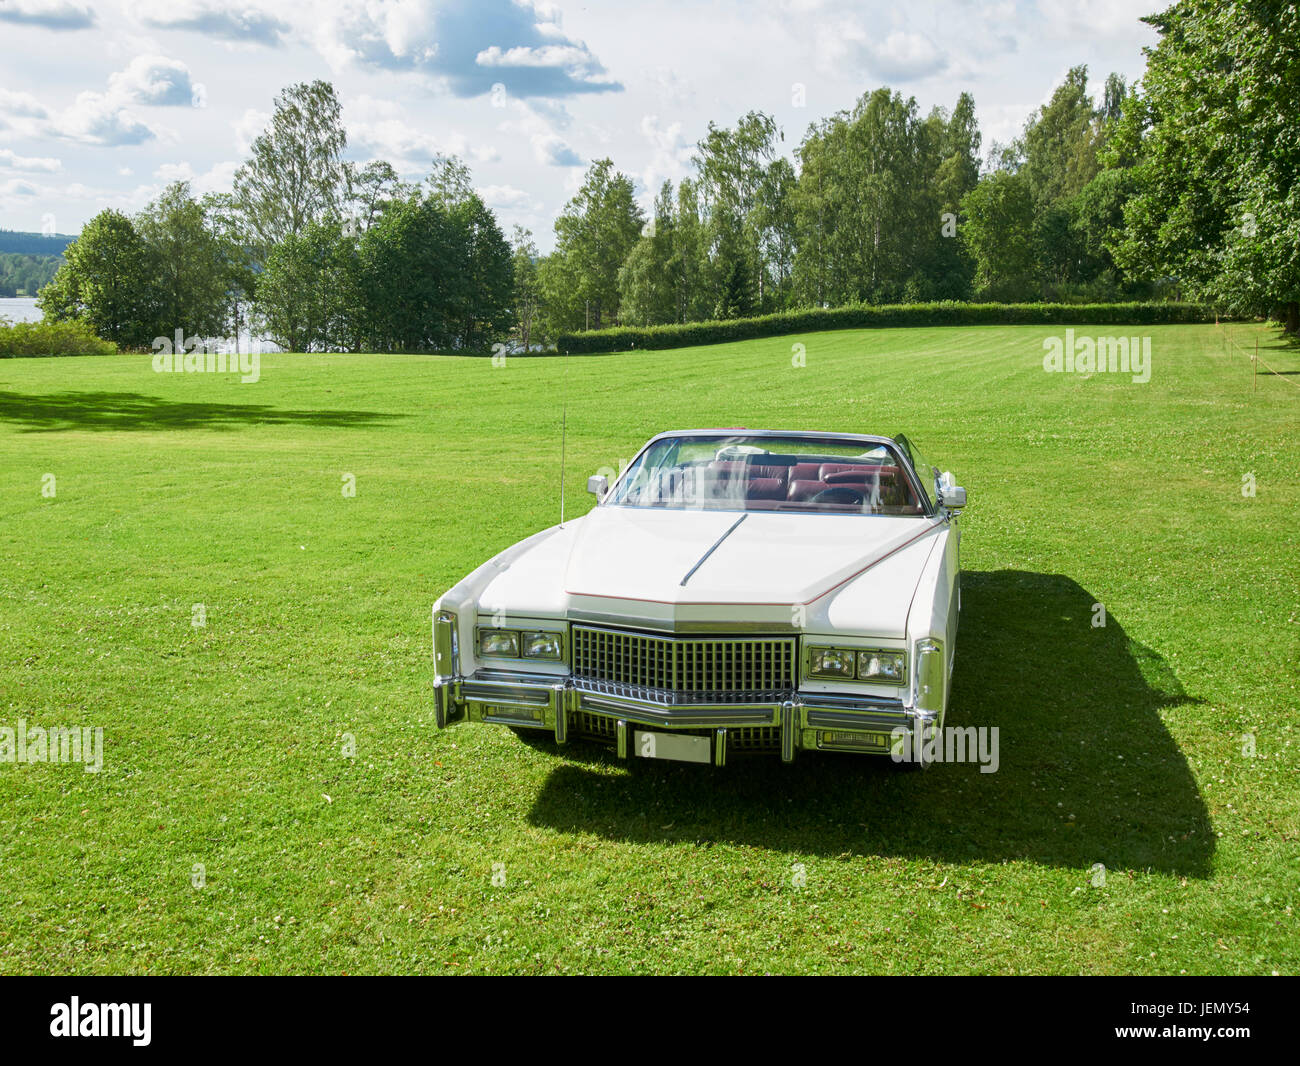 Vintage car on lawn - Stock Image